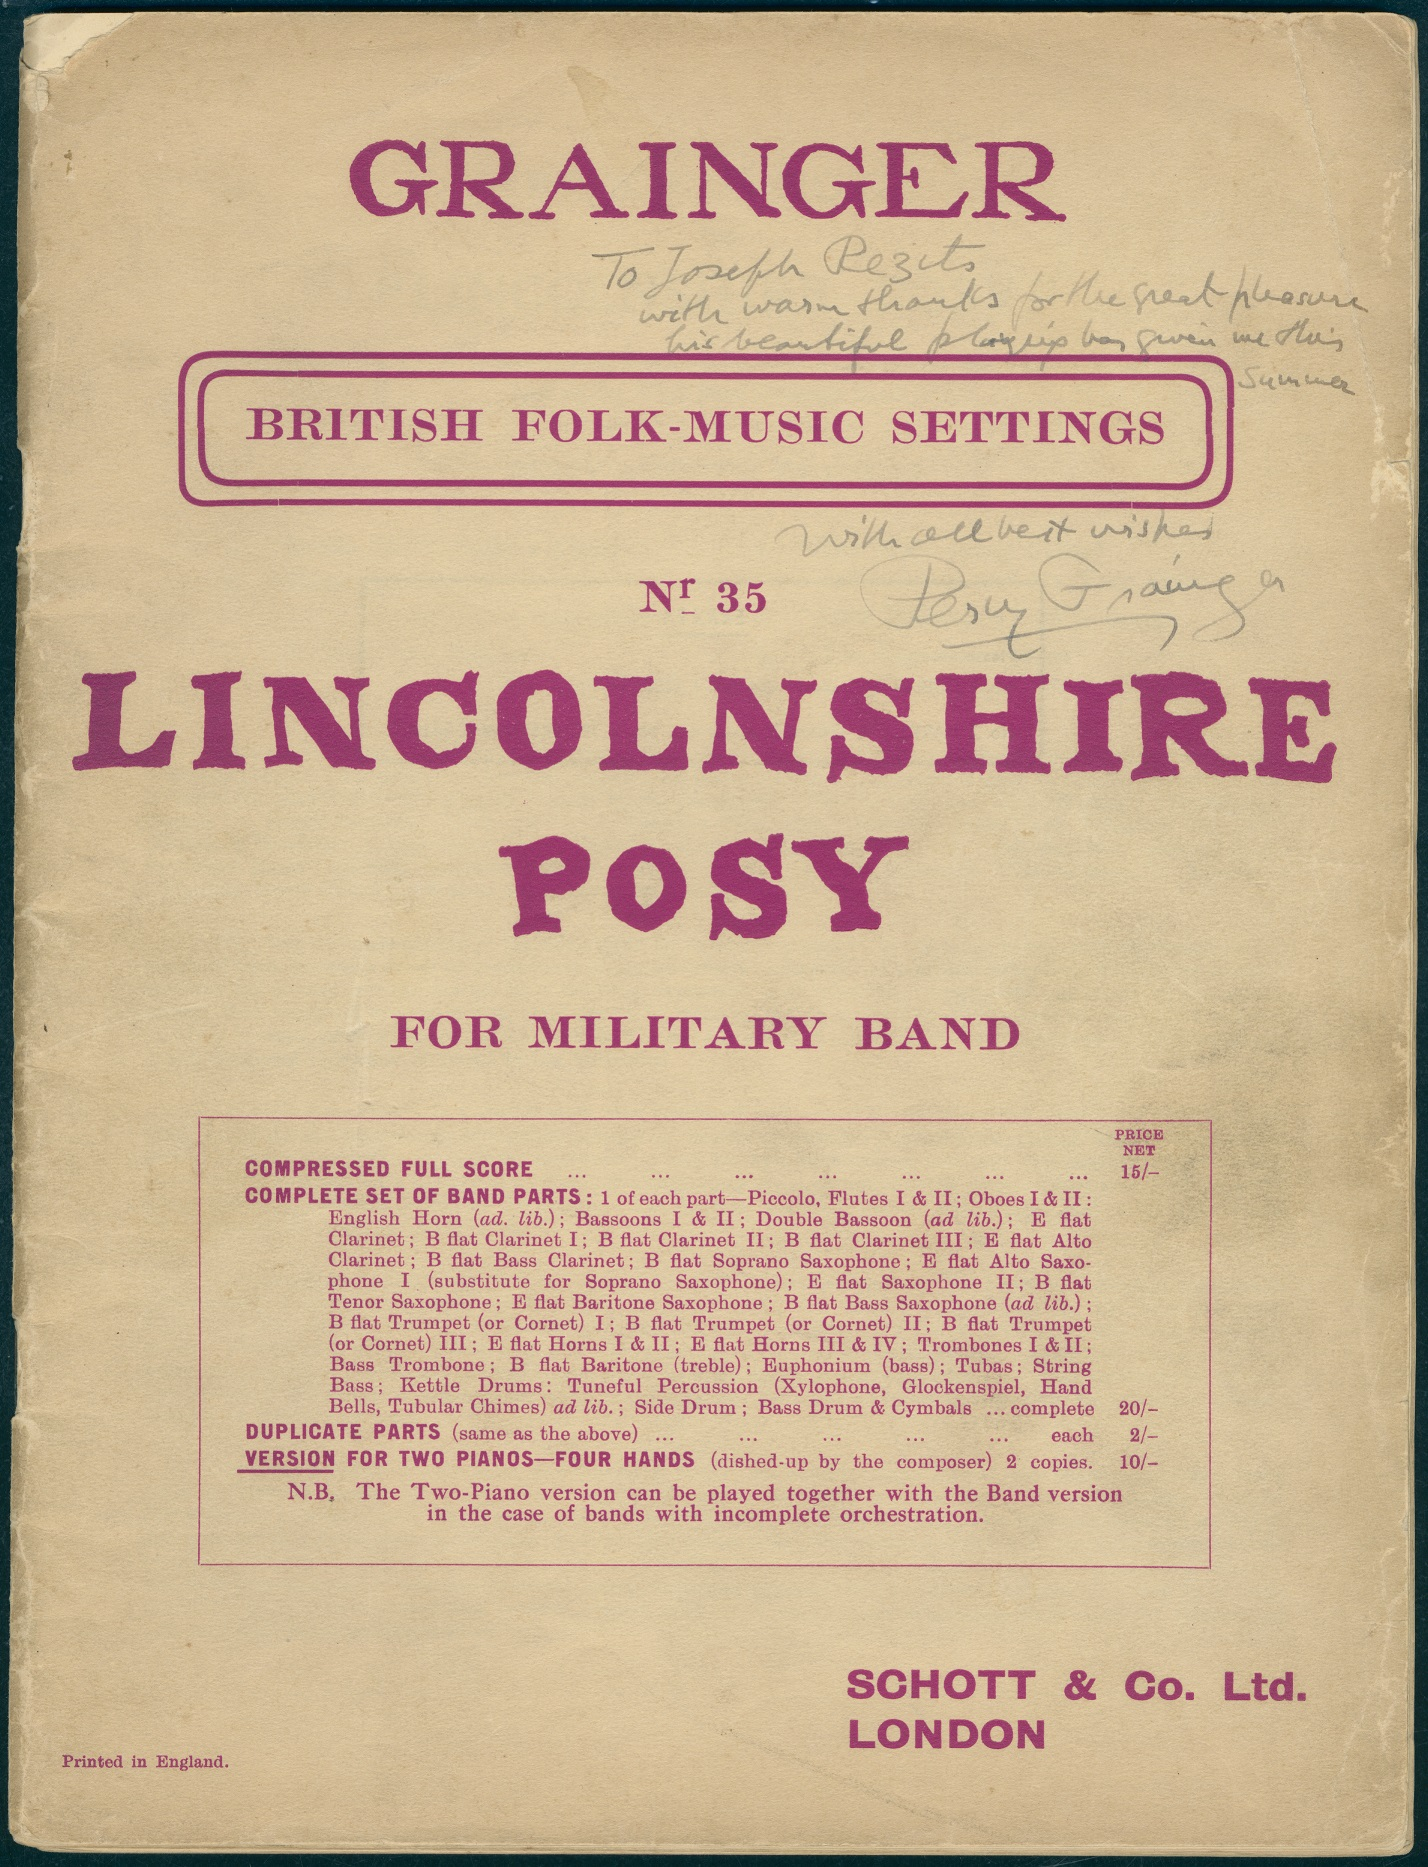 The front cover of Lincolnshire Posy, by Percy Grainger, version for 2 pianos 4 hands